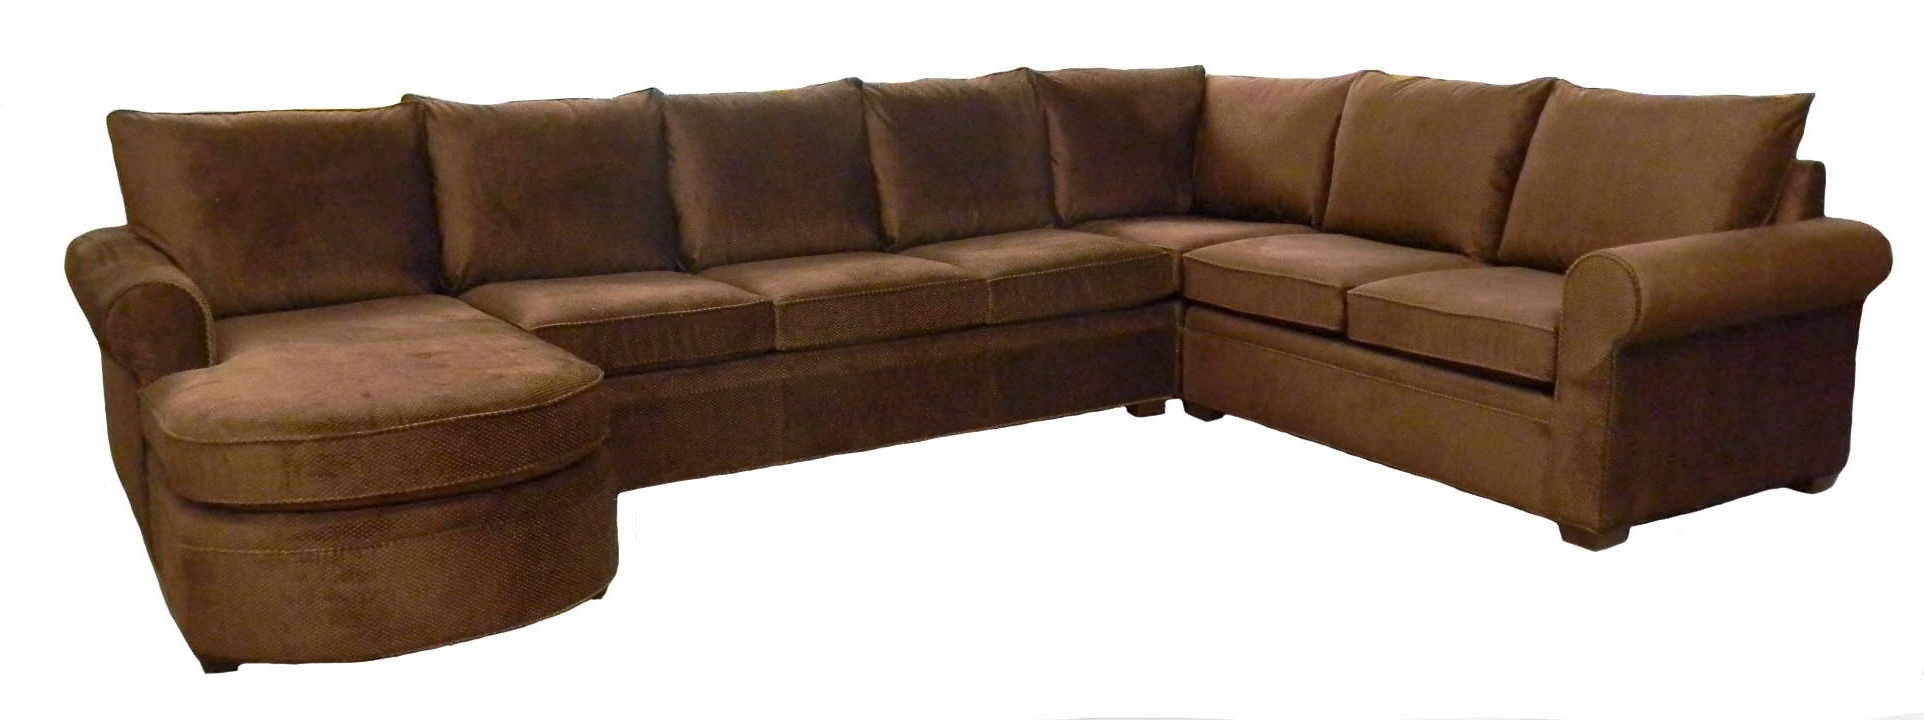 Most Current Examples Custom Sectional Sofas Carolina Chair Furniture For Customizable Sectional Sofas (View 8 of 15)